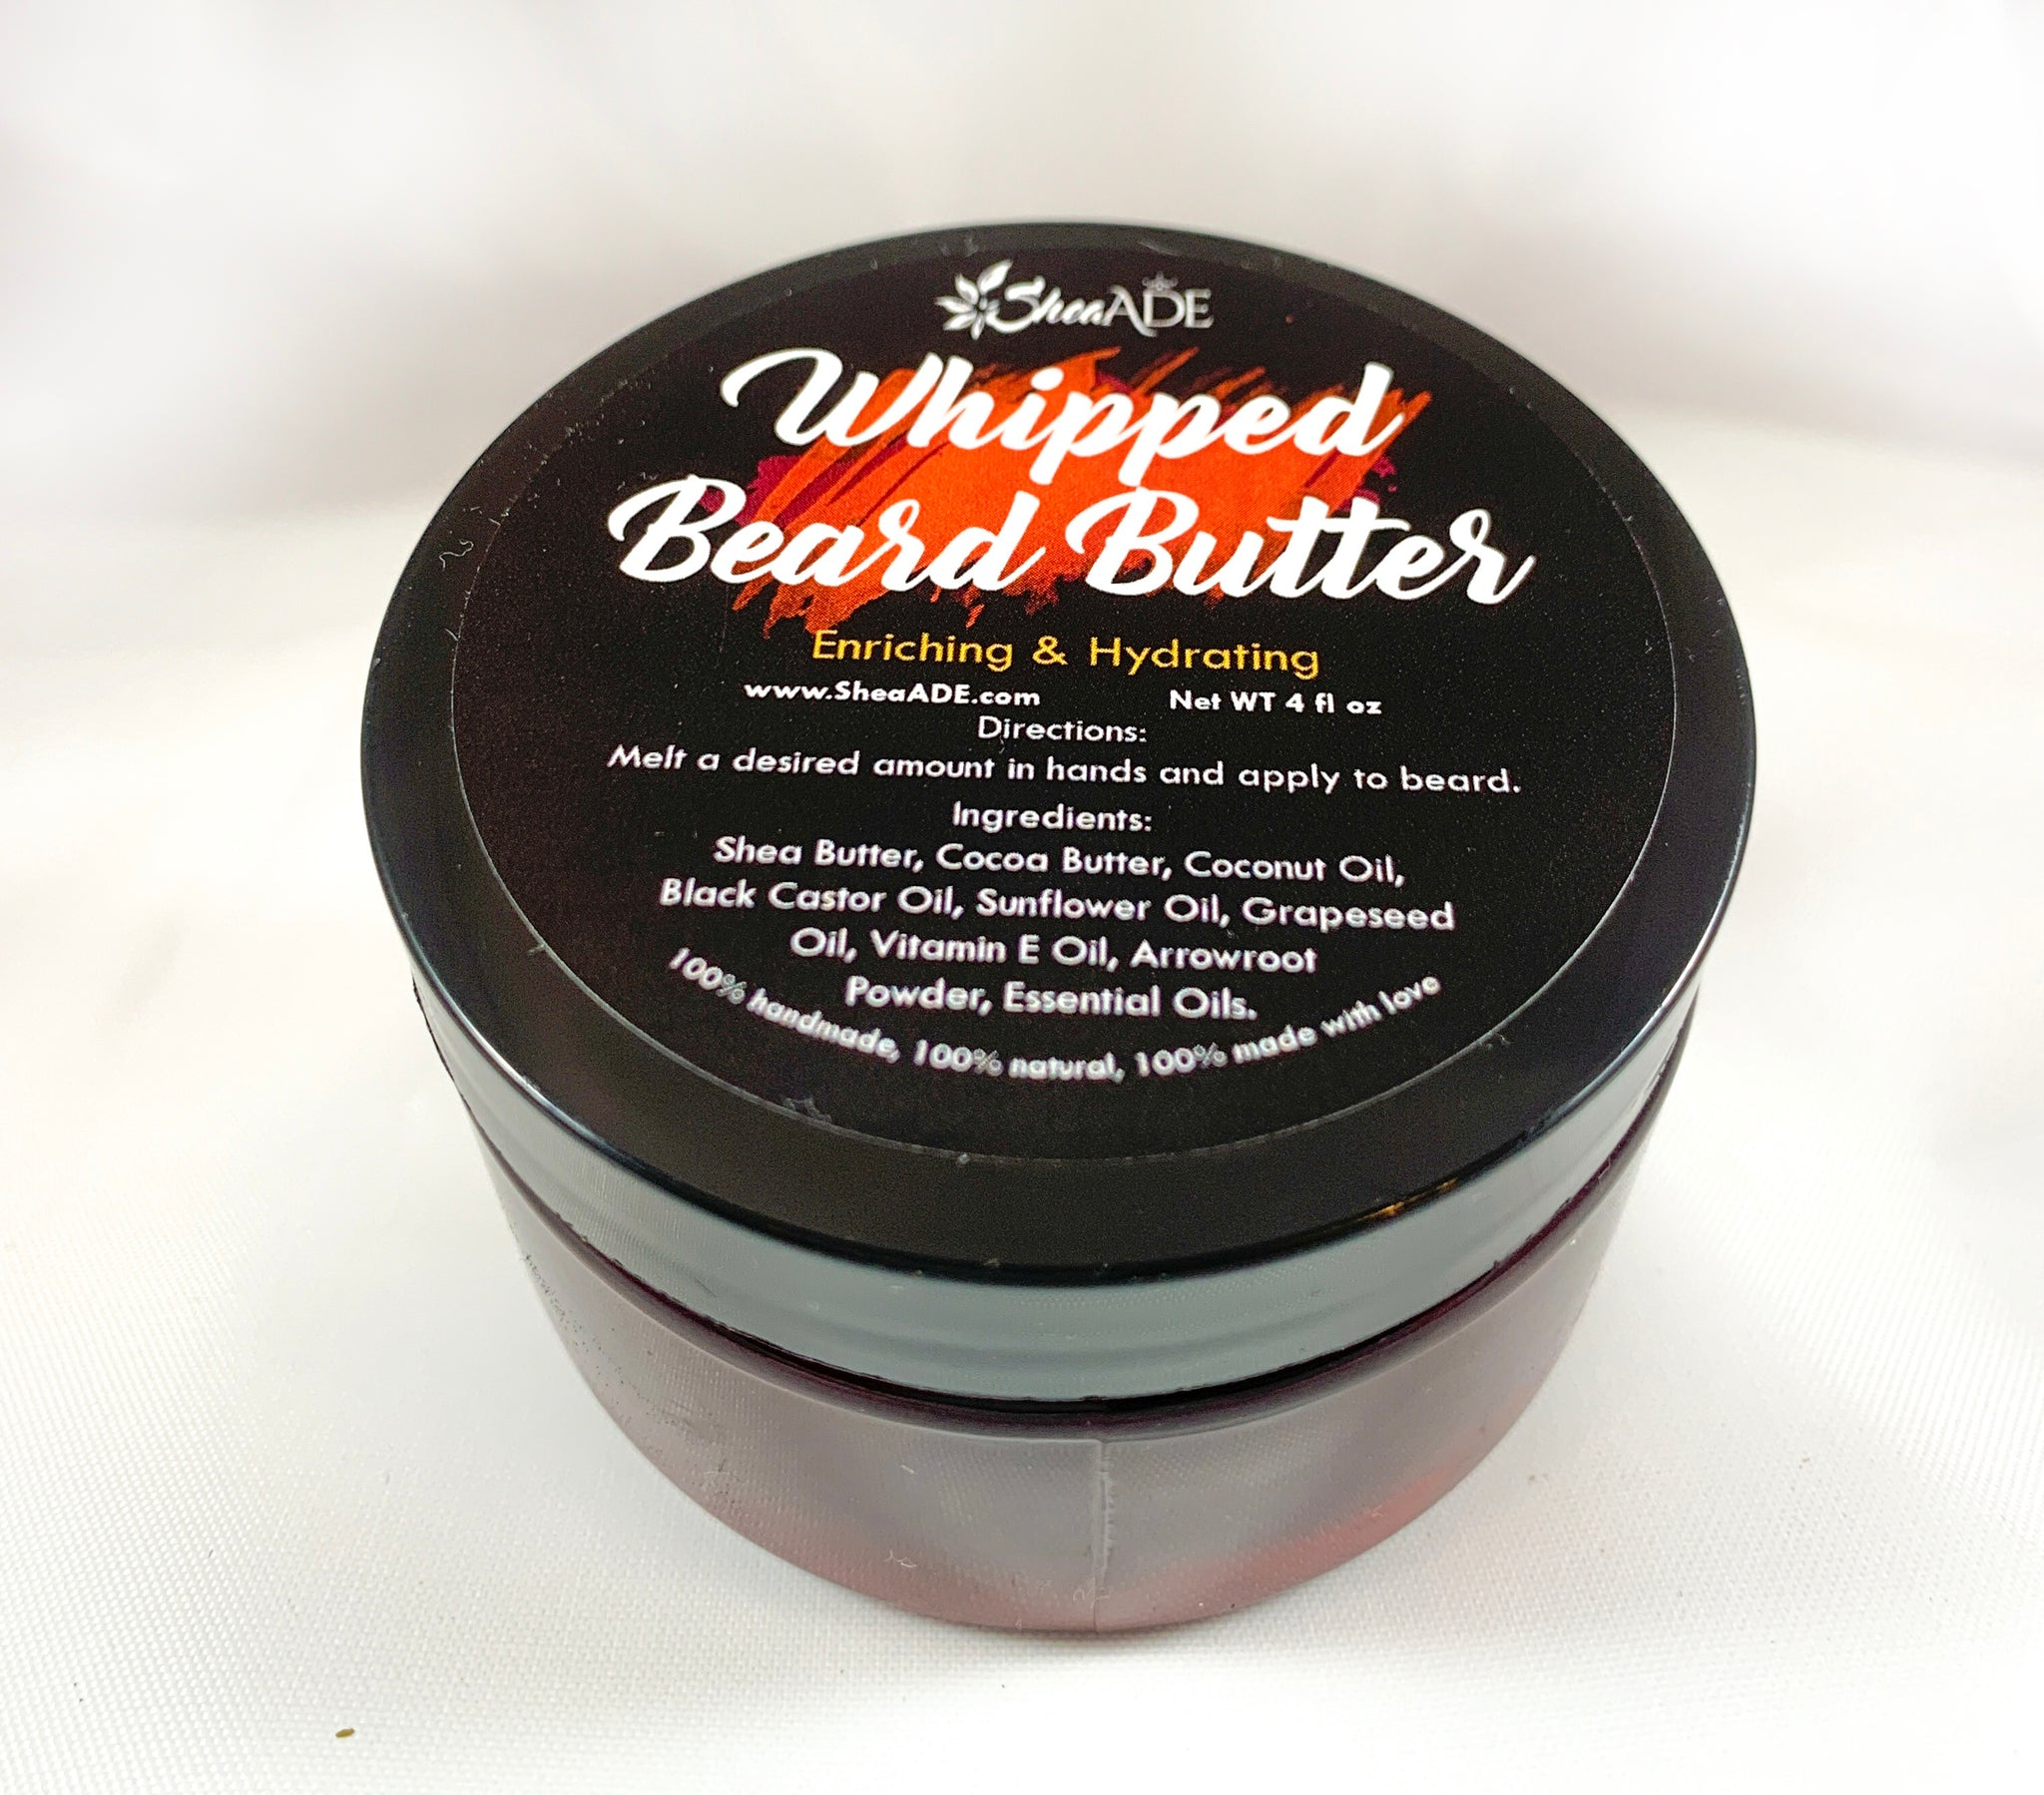 Whipped Beard Butter